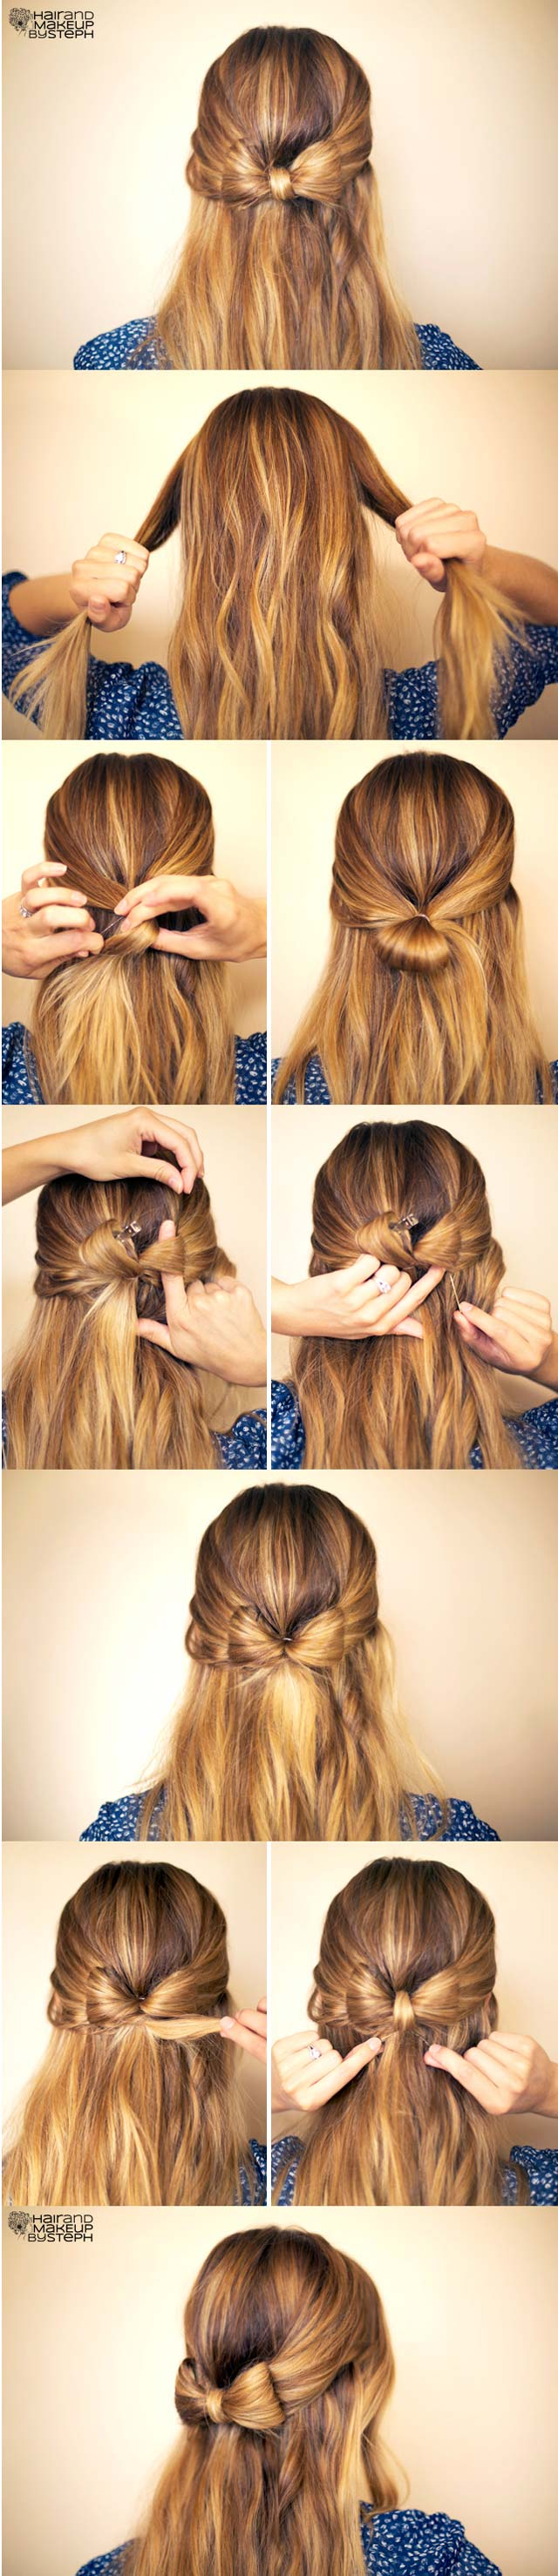 Easy Hairstyles Formal Hairstyles For Long Hair Pinterest